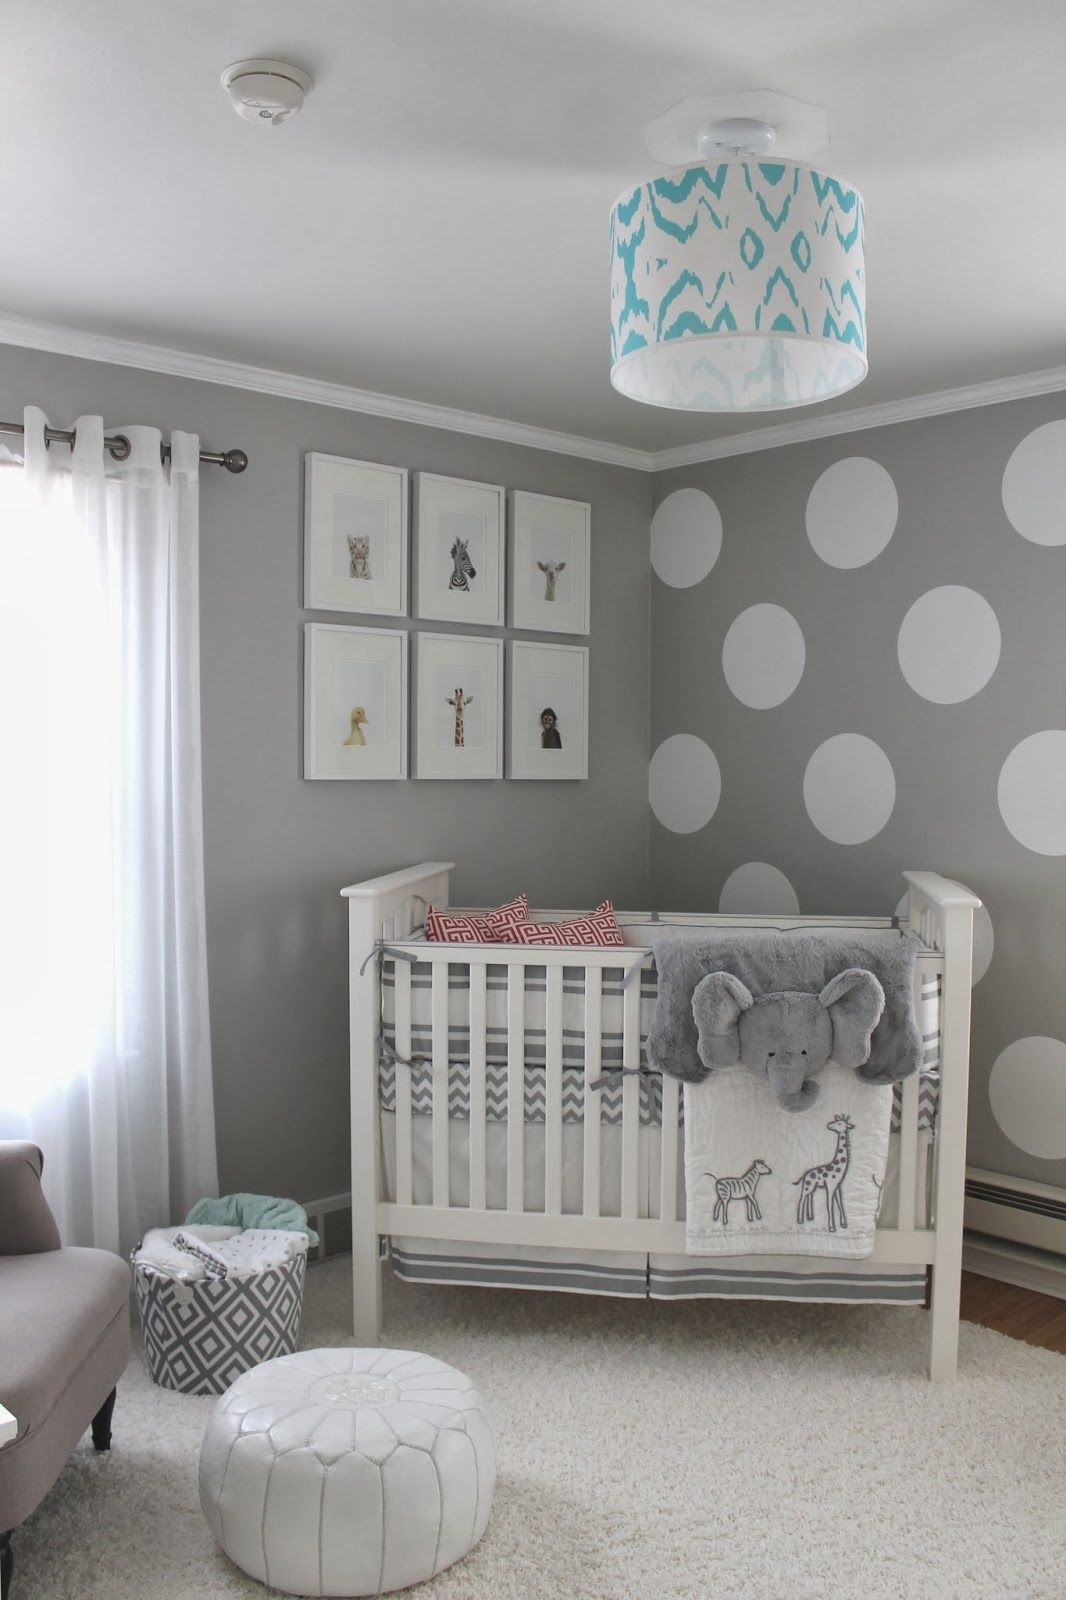 Gray baby room pictures photos and images for facebook for Babies decoration room